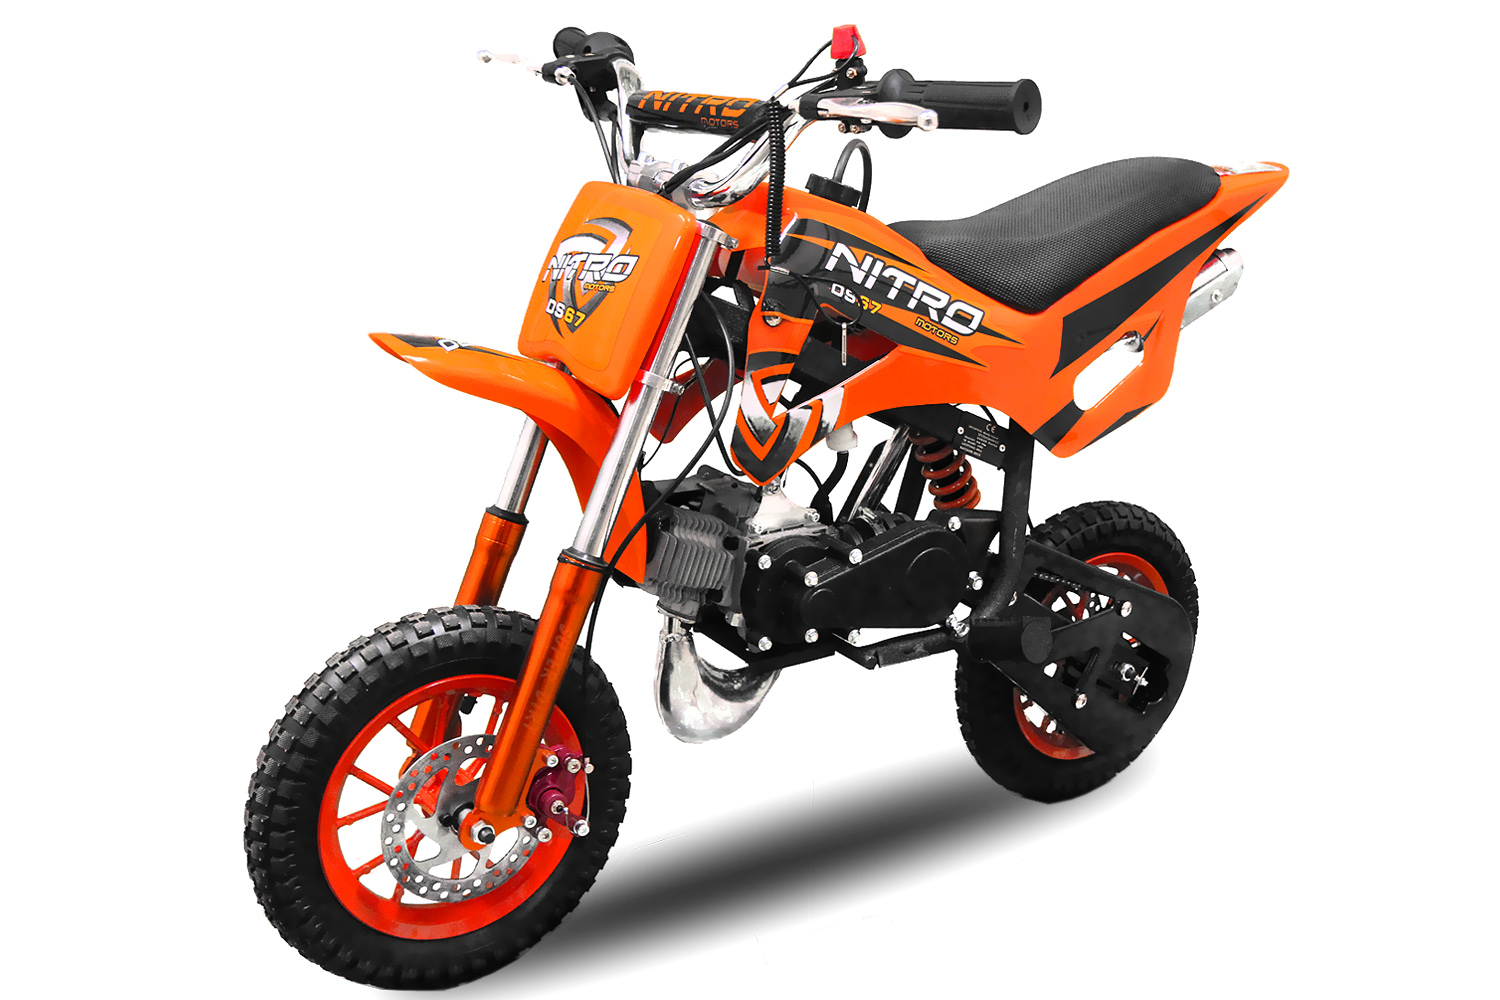 nitro mini dirt bike 50cc automatic disc brakes kill. Black Bedroom Furniture Sets. Home Design Ideas